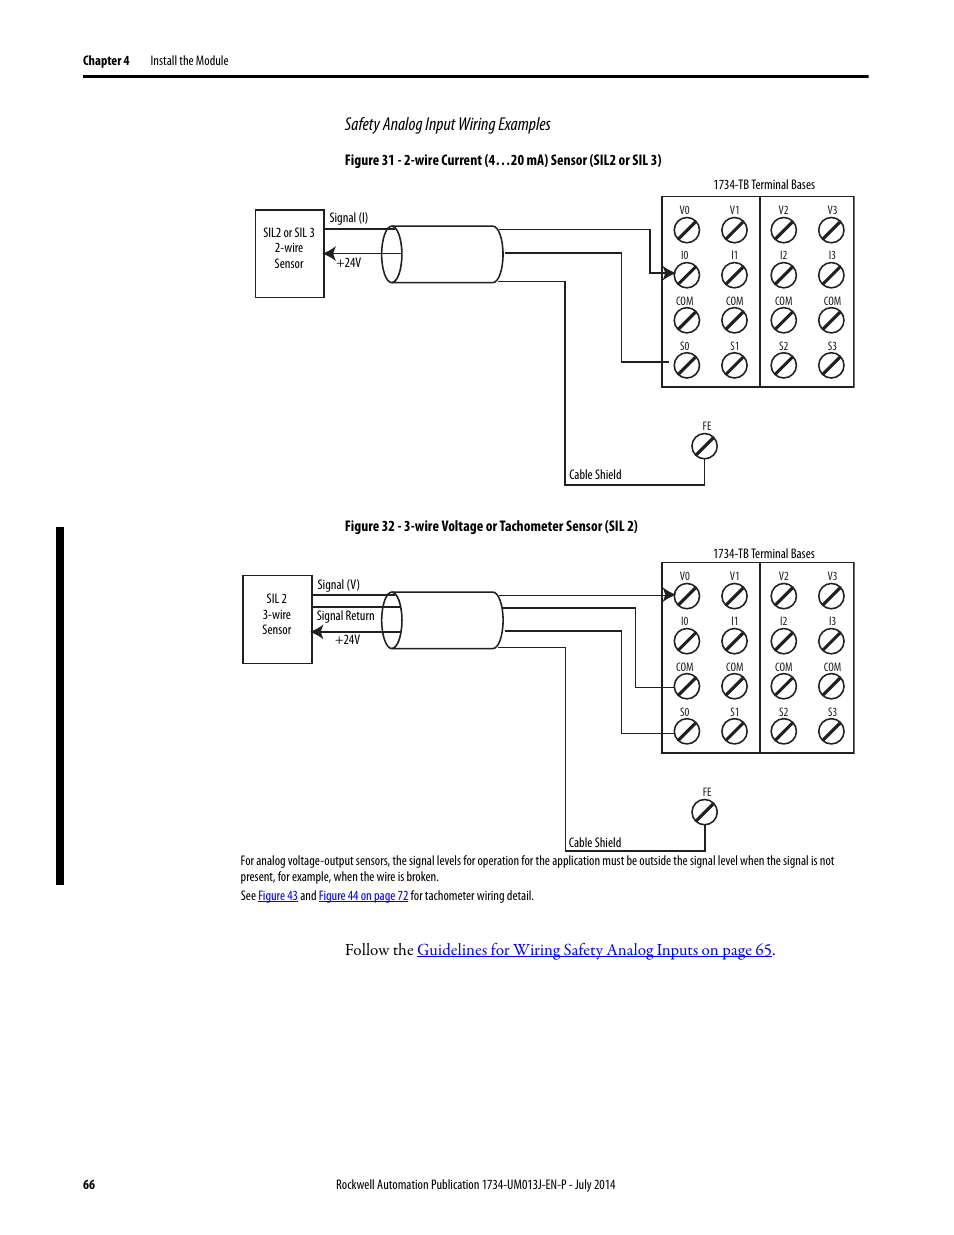 rockwell automation 1734 ie4s point guard i_o safety modules user manual page66 safety analog input wiring examples rockwell automation 1734 1734 ib8s wiring diagram at soozxer.org